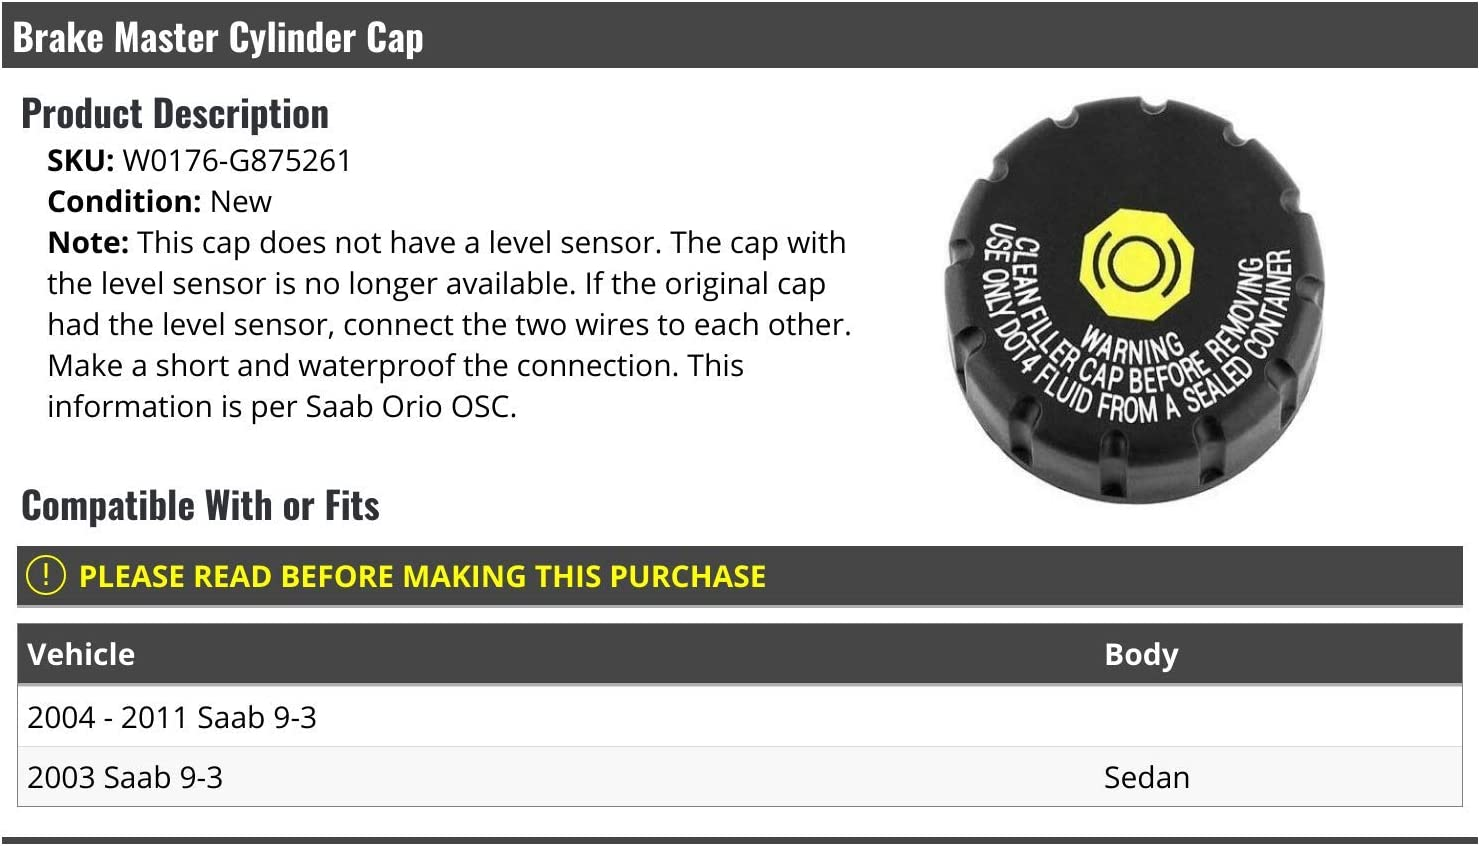 Brake Master Cylinder Cap Compatible with 2003-2011 Saab 9-3 Sedan